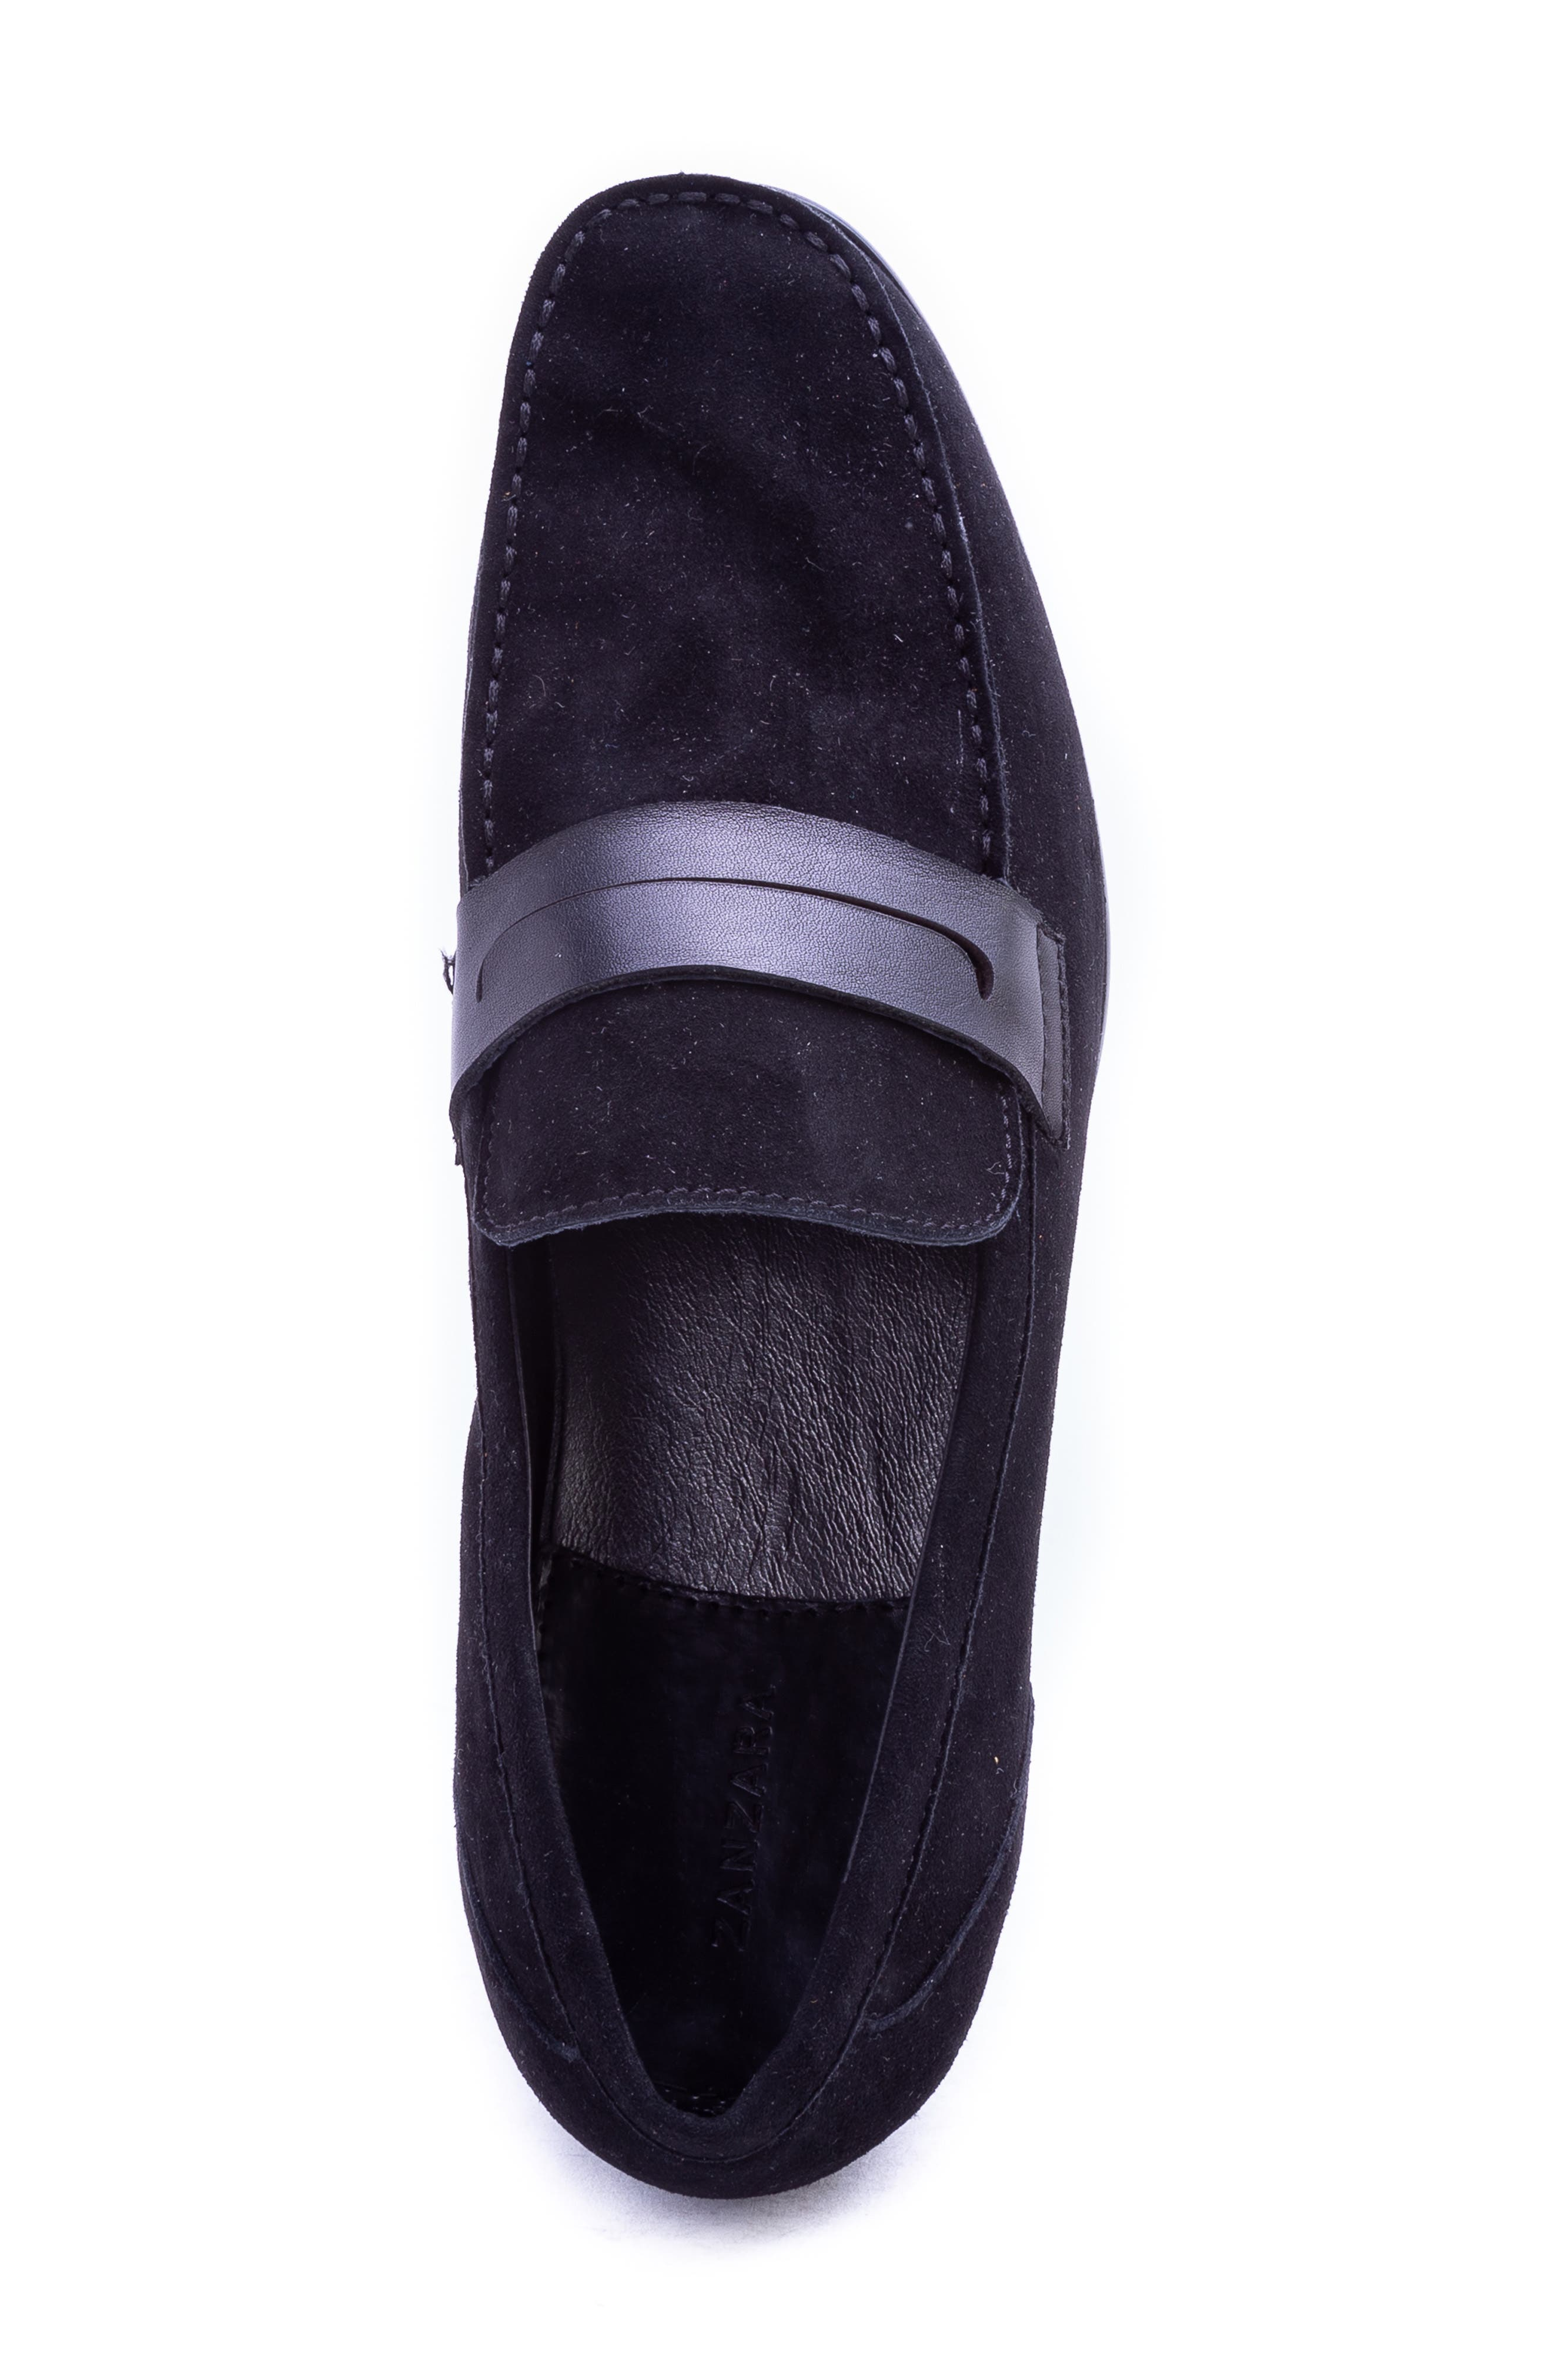 Opie Penny Loafer,                             Alternate thumbnail 5, color,                             BLACK SUEDE/ LEATHER